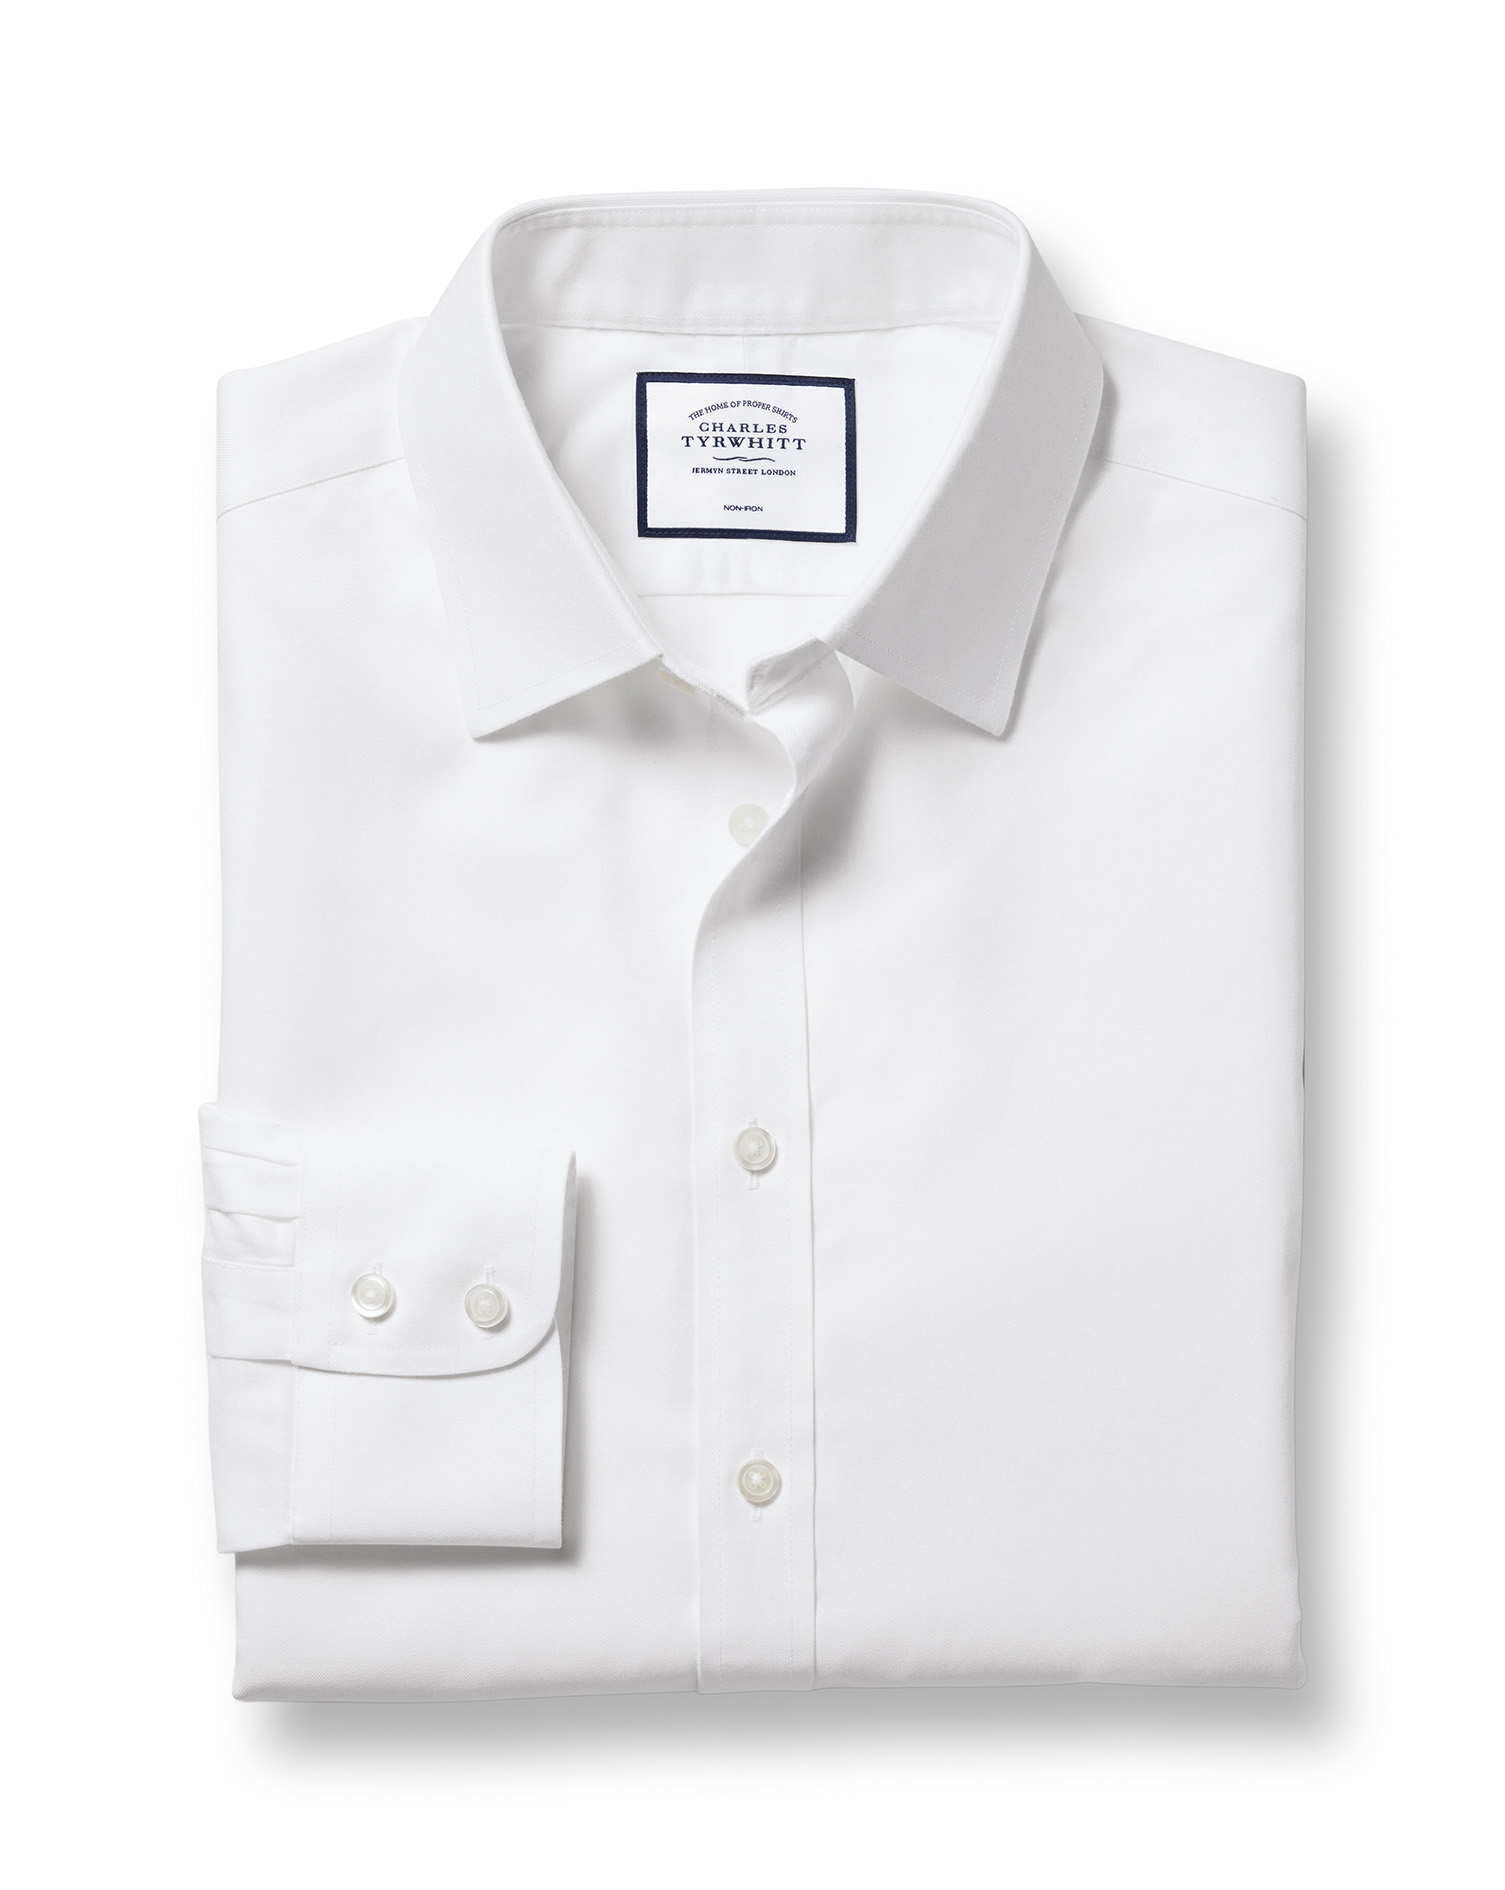 Extra Slim Fit Non-Iron Twill White Cotton Formal Shirt Double Cuff Size 14.5/32 by Charles Tyrwhitt